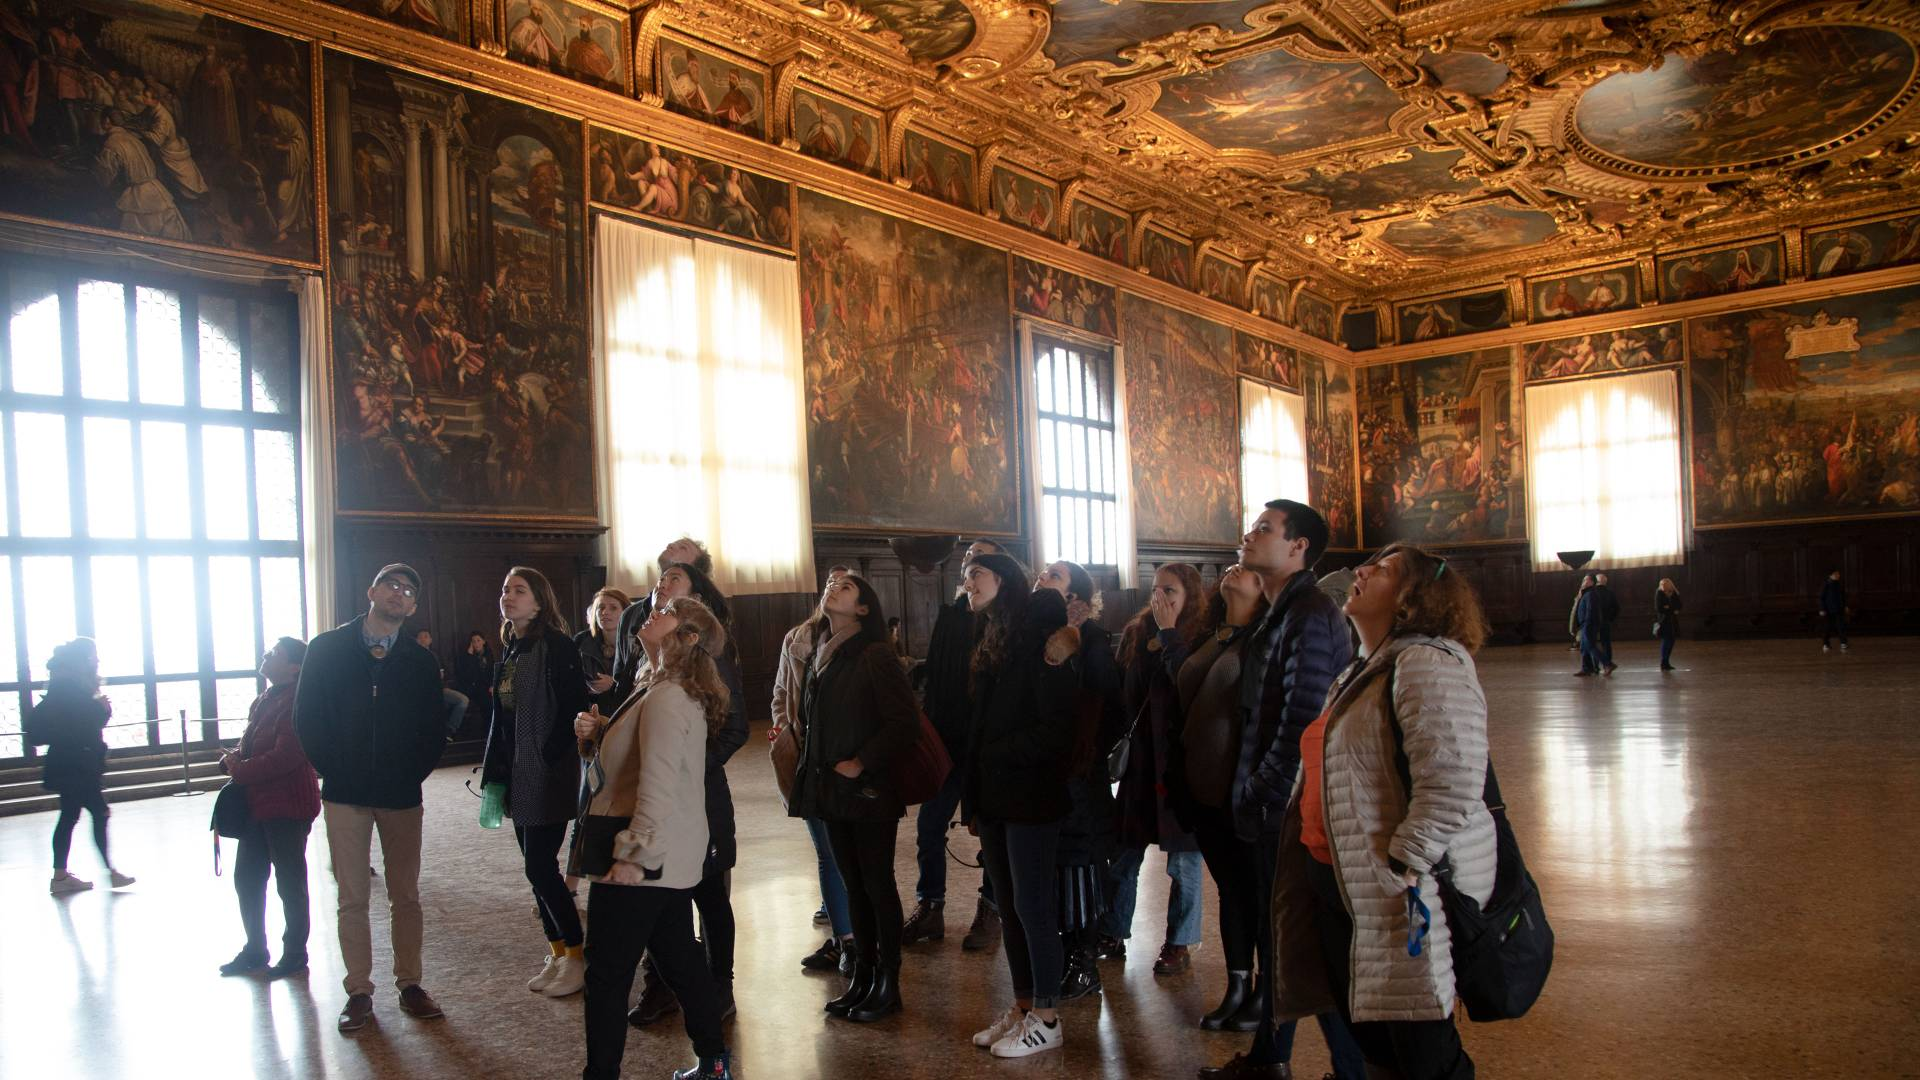 Students looking up at ceiling in Doge's Palace in Venice